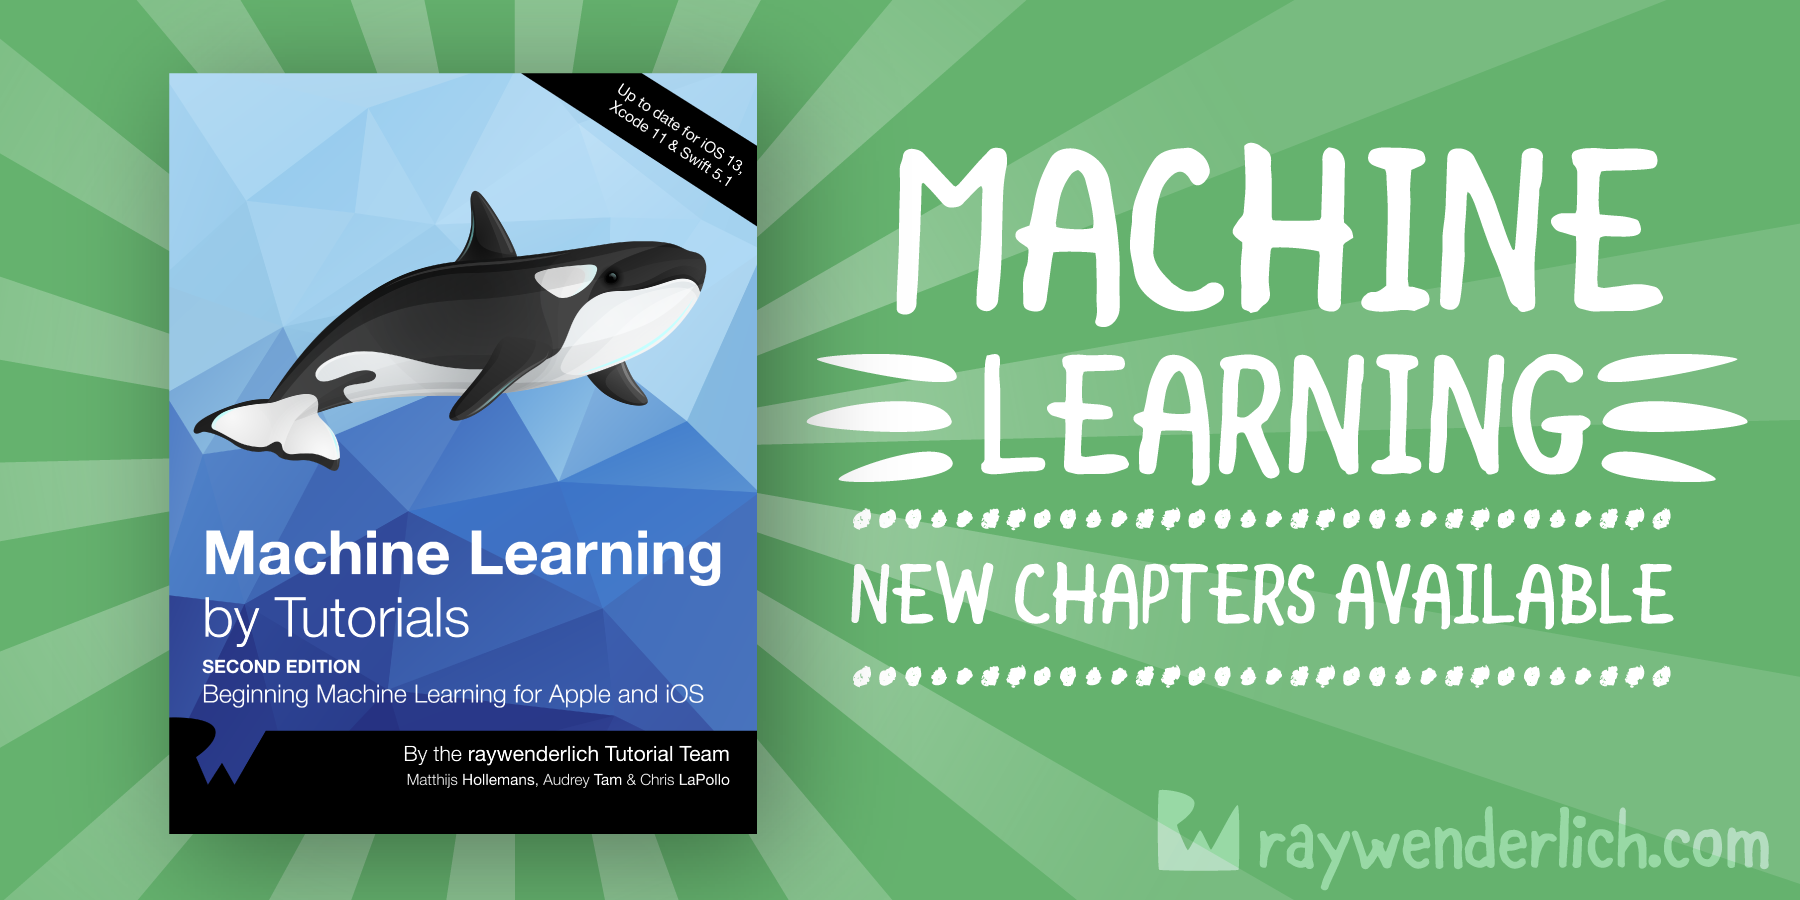 Machine Learning by Tutorials: 3 More Updated Chapters! [FREE]